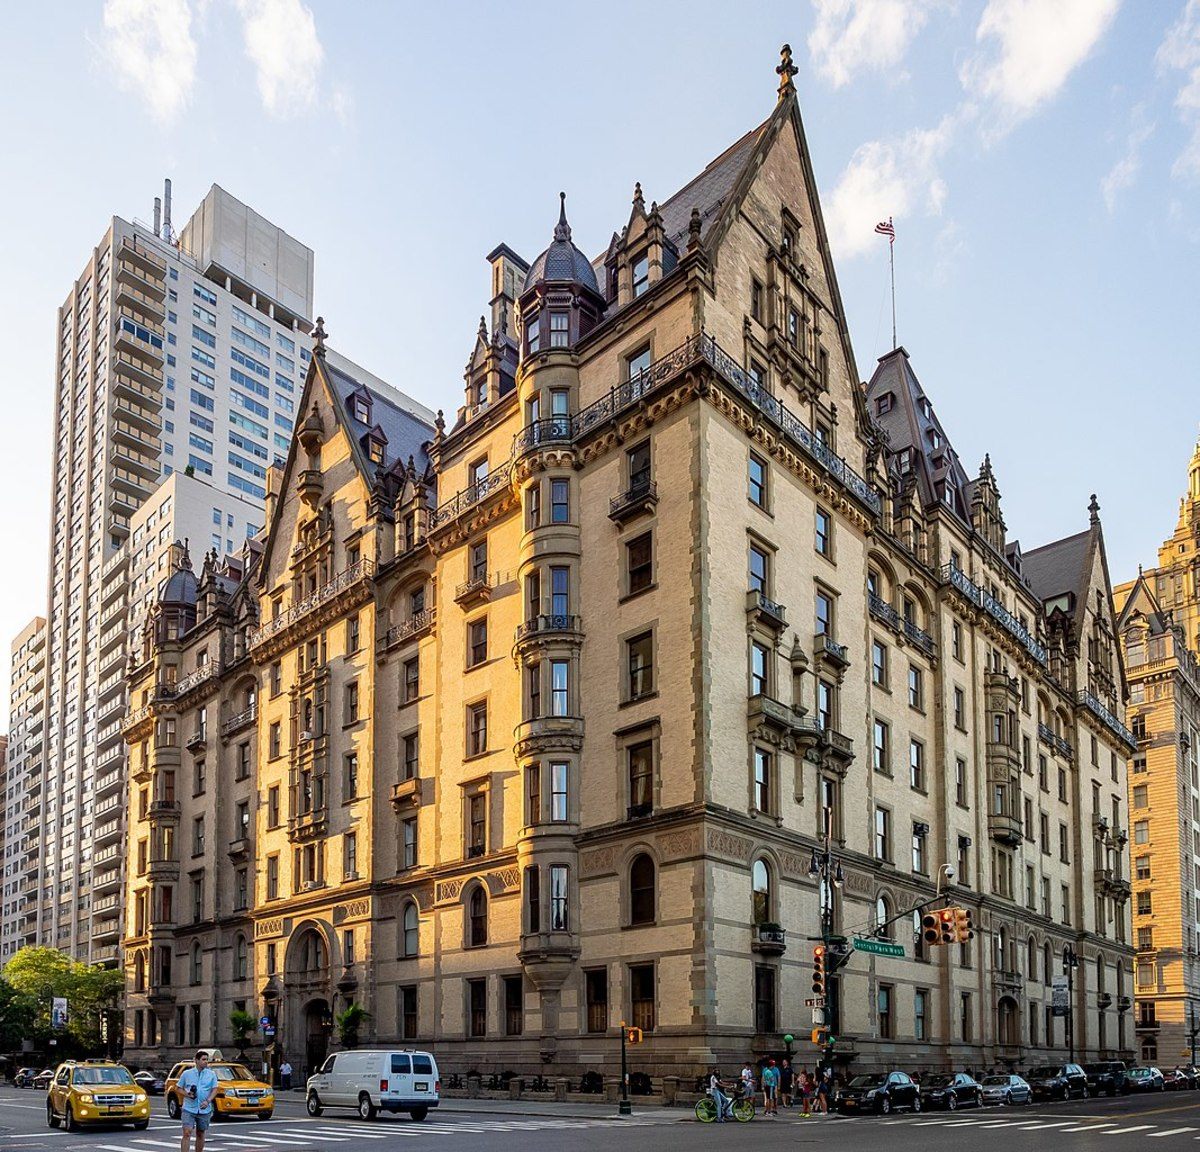 NYC's The Dakota, with its distinctive architectural features, was the perfect backdrop for the creepy The Bramford in Rosemary's Baby.